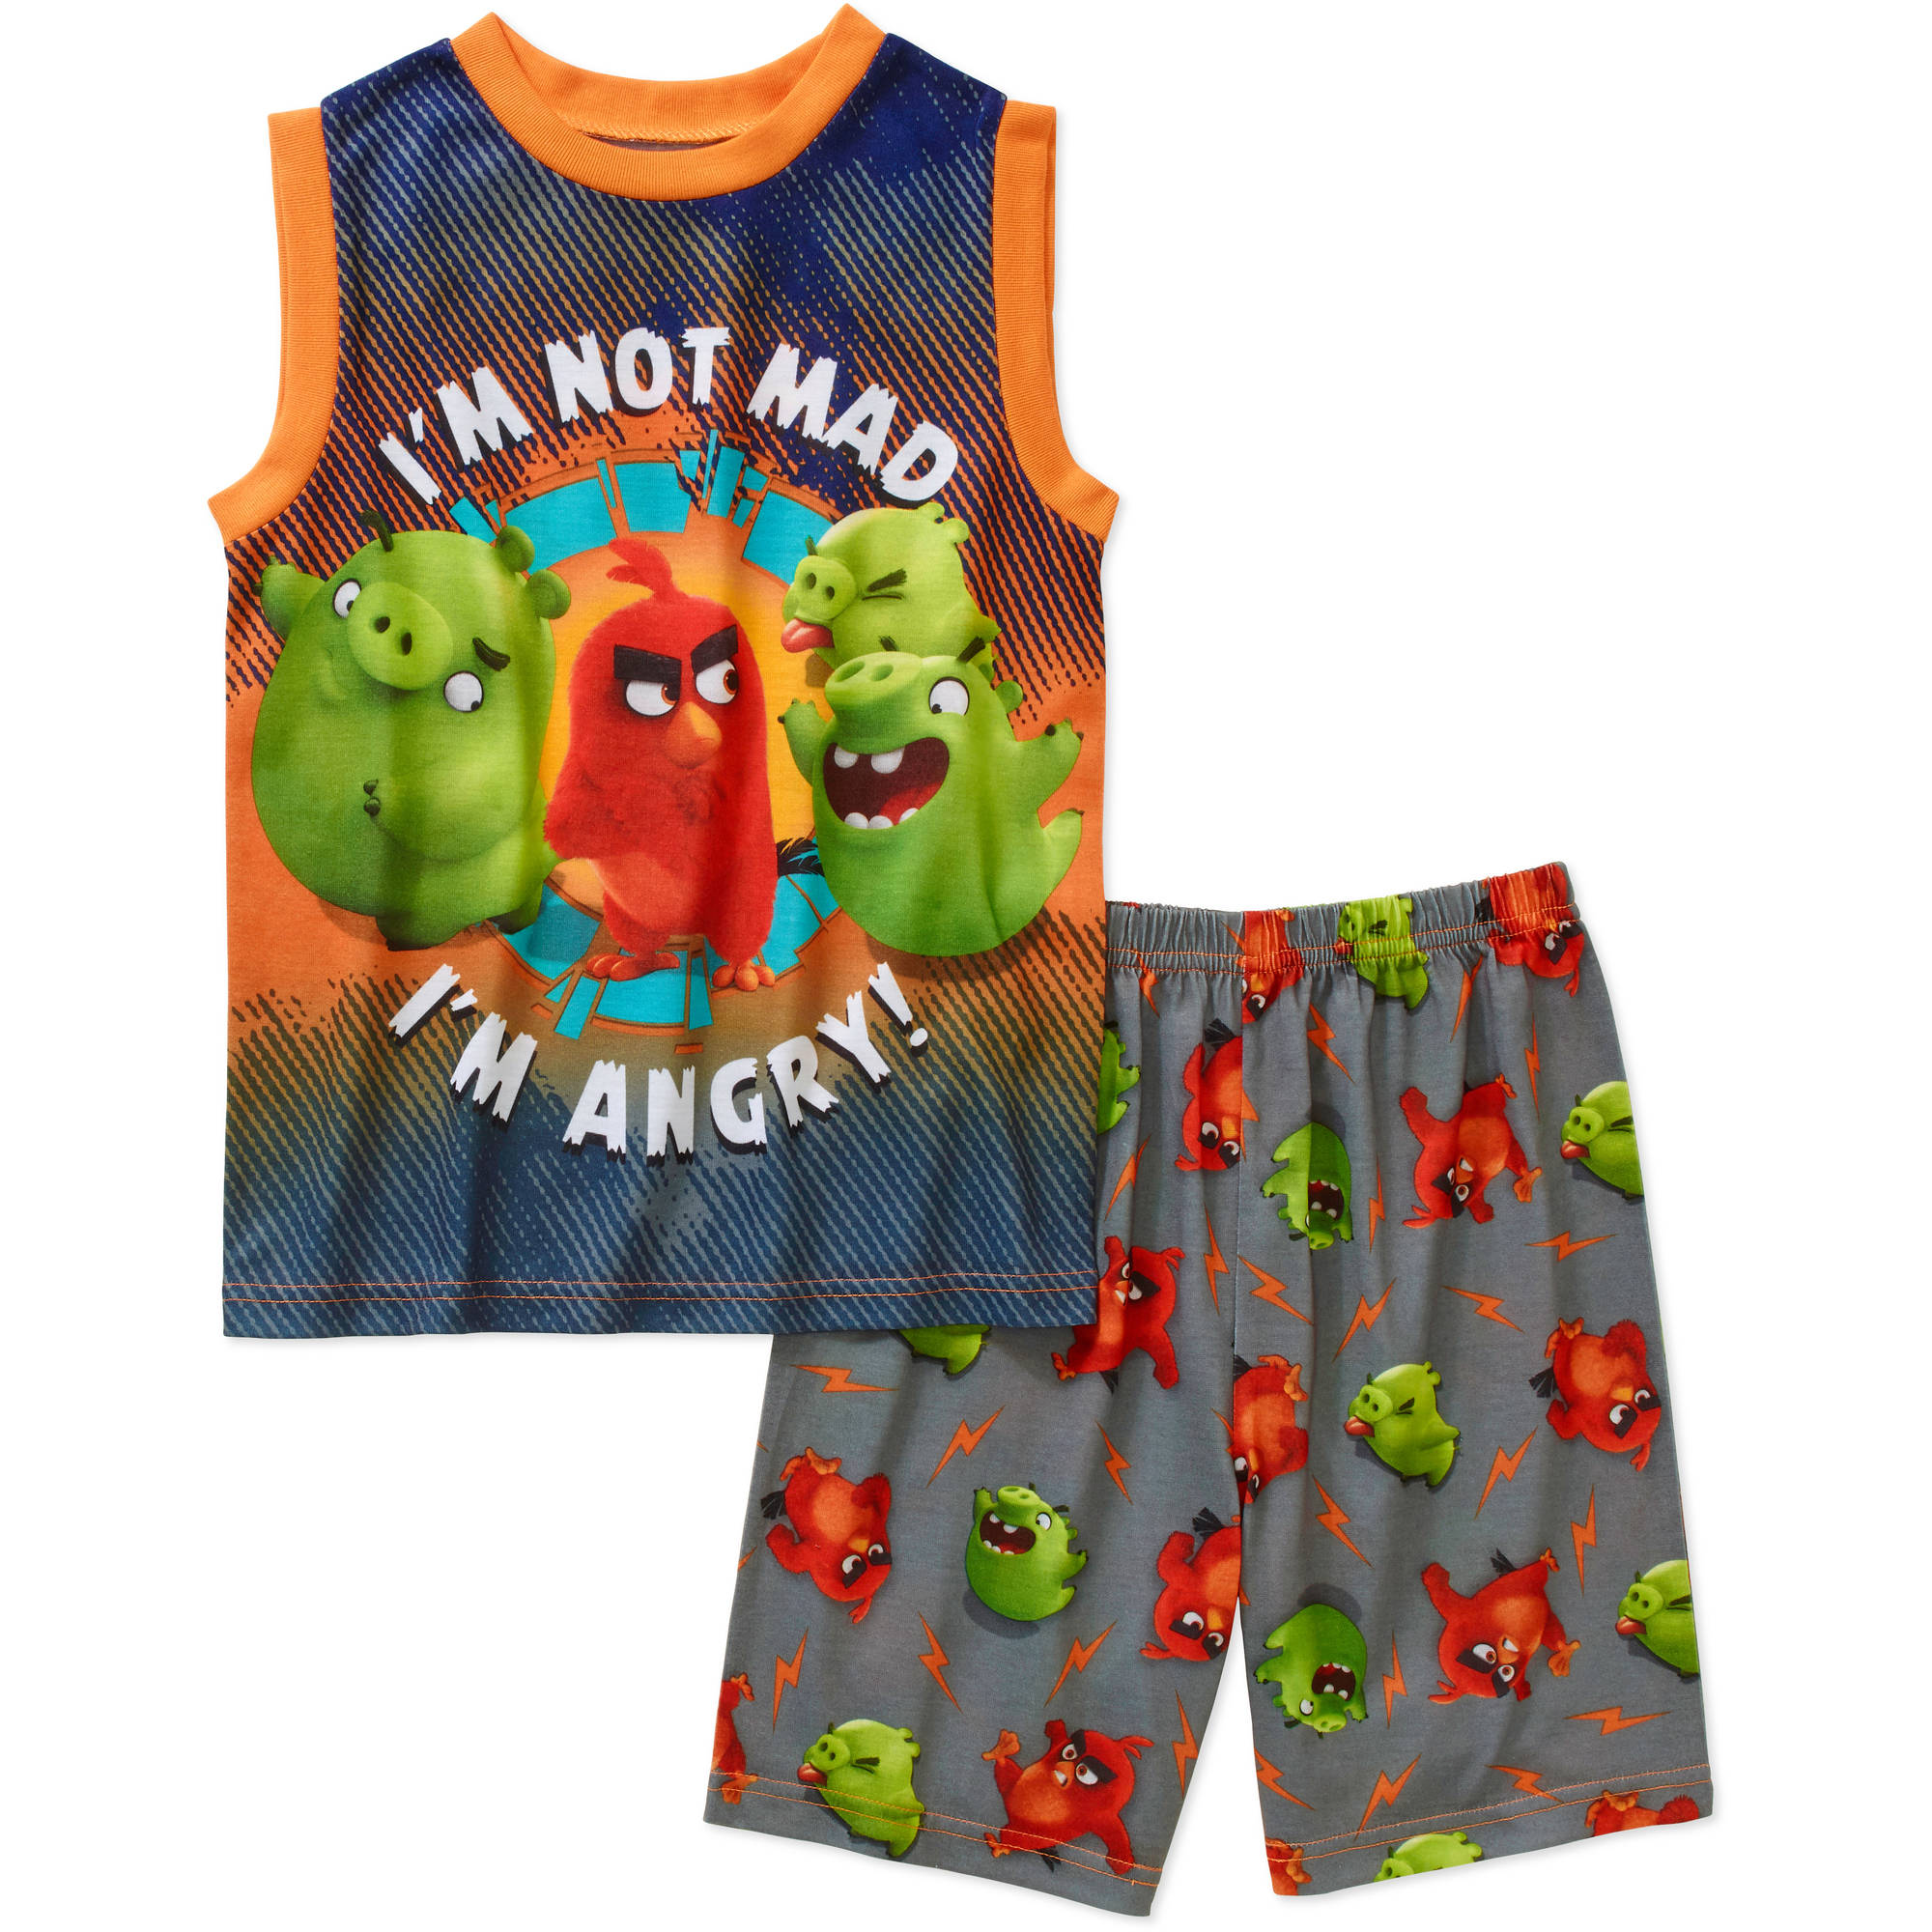 Angry Birds Boys' License Muscle Sleep Shirt and Shorts 2 Piece Pajama Set